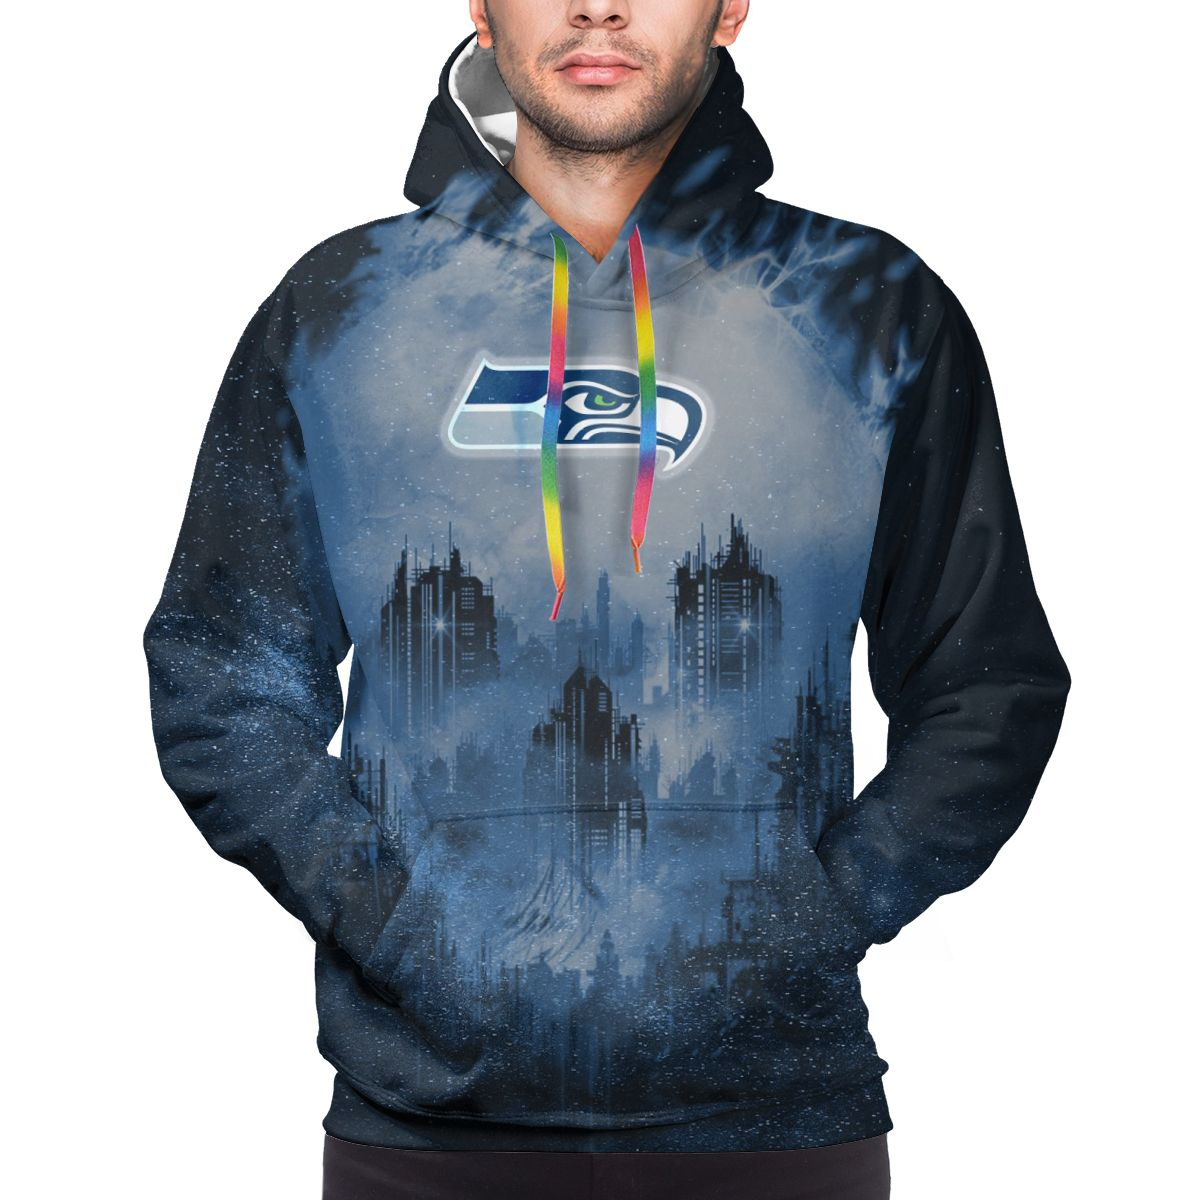 Armageddon Seahawks Logo Print Hoodies For Men Pullover Sweatshirt